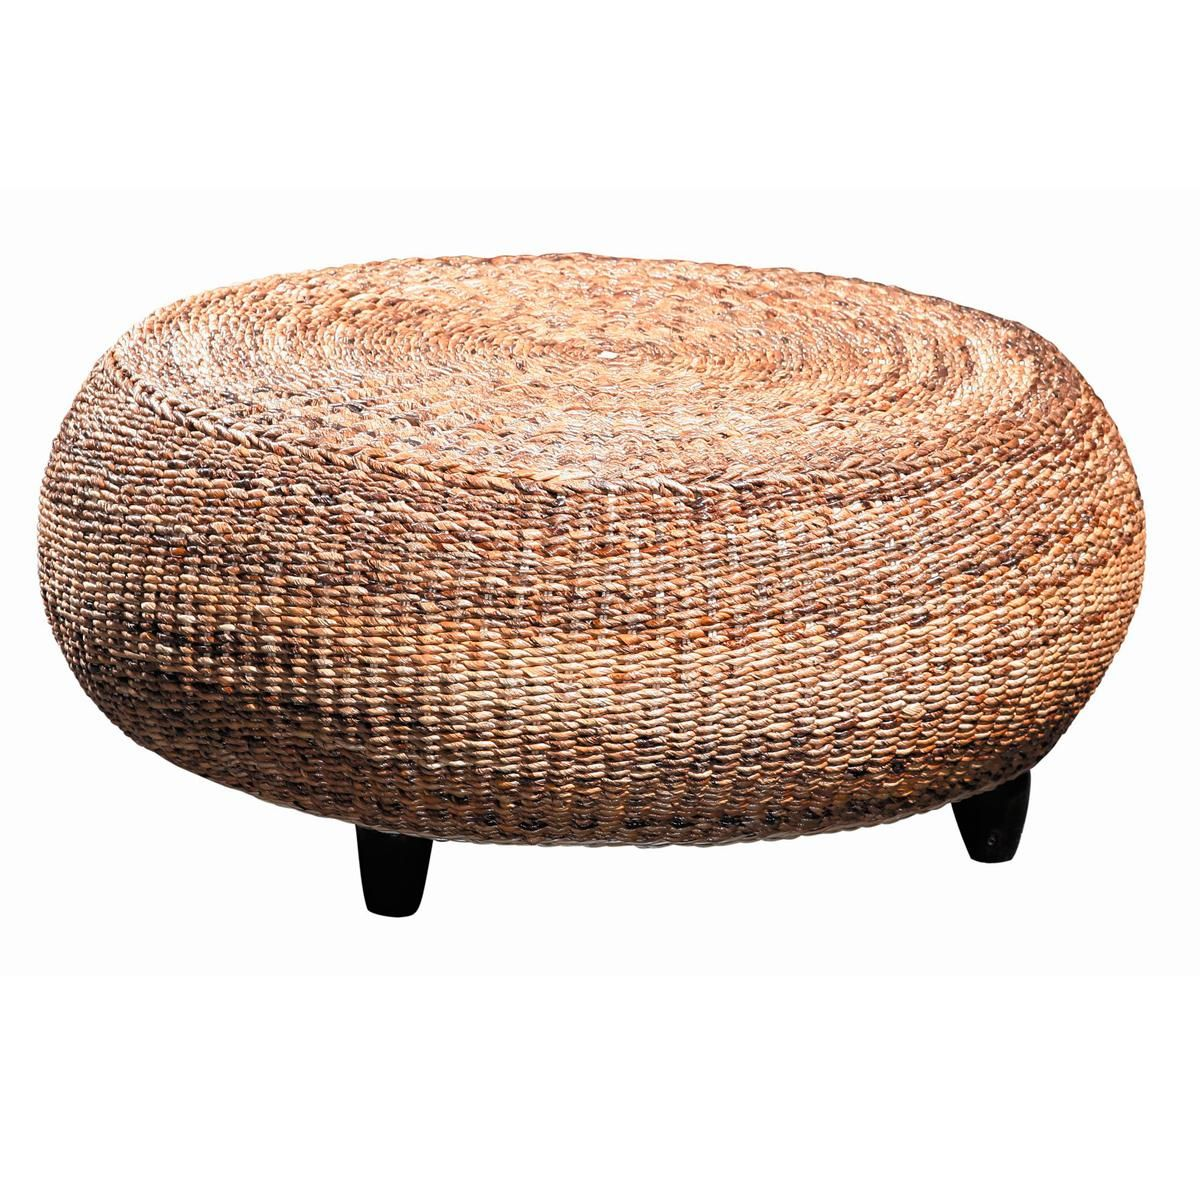 - Round Seagrass Ottoman Something Like This For Family Room Coffee